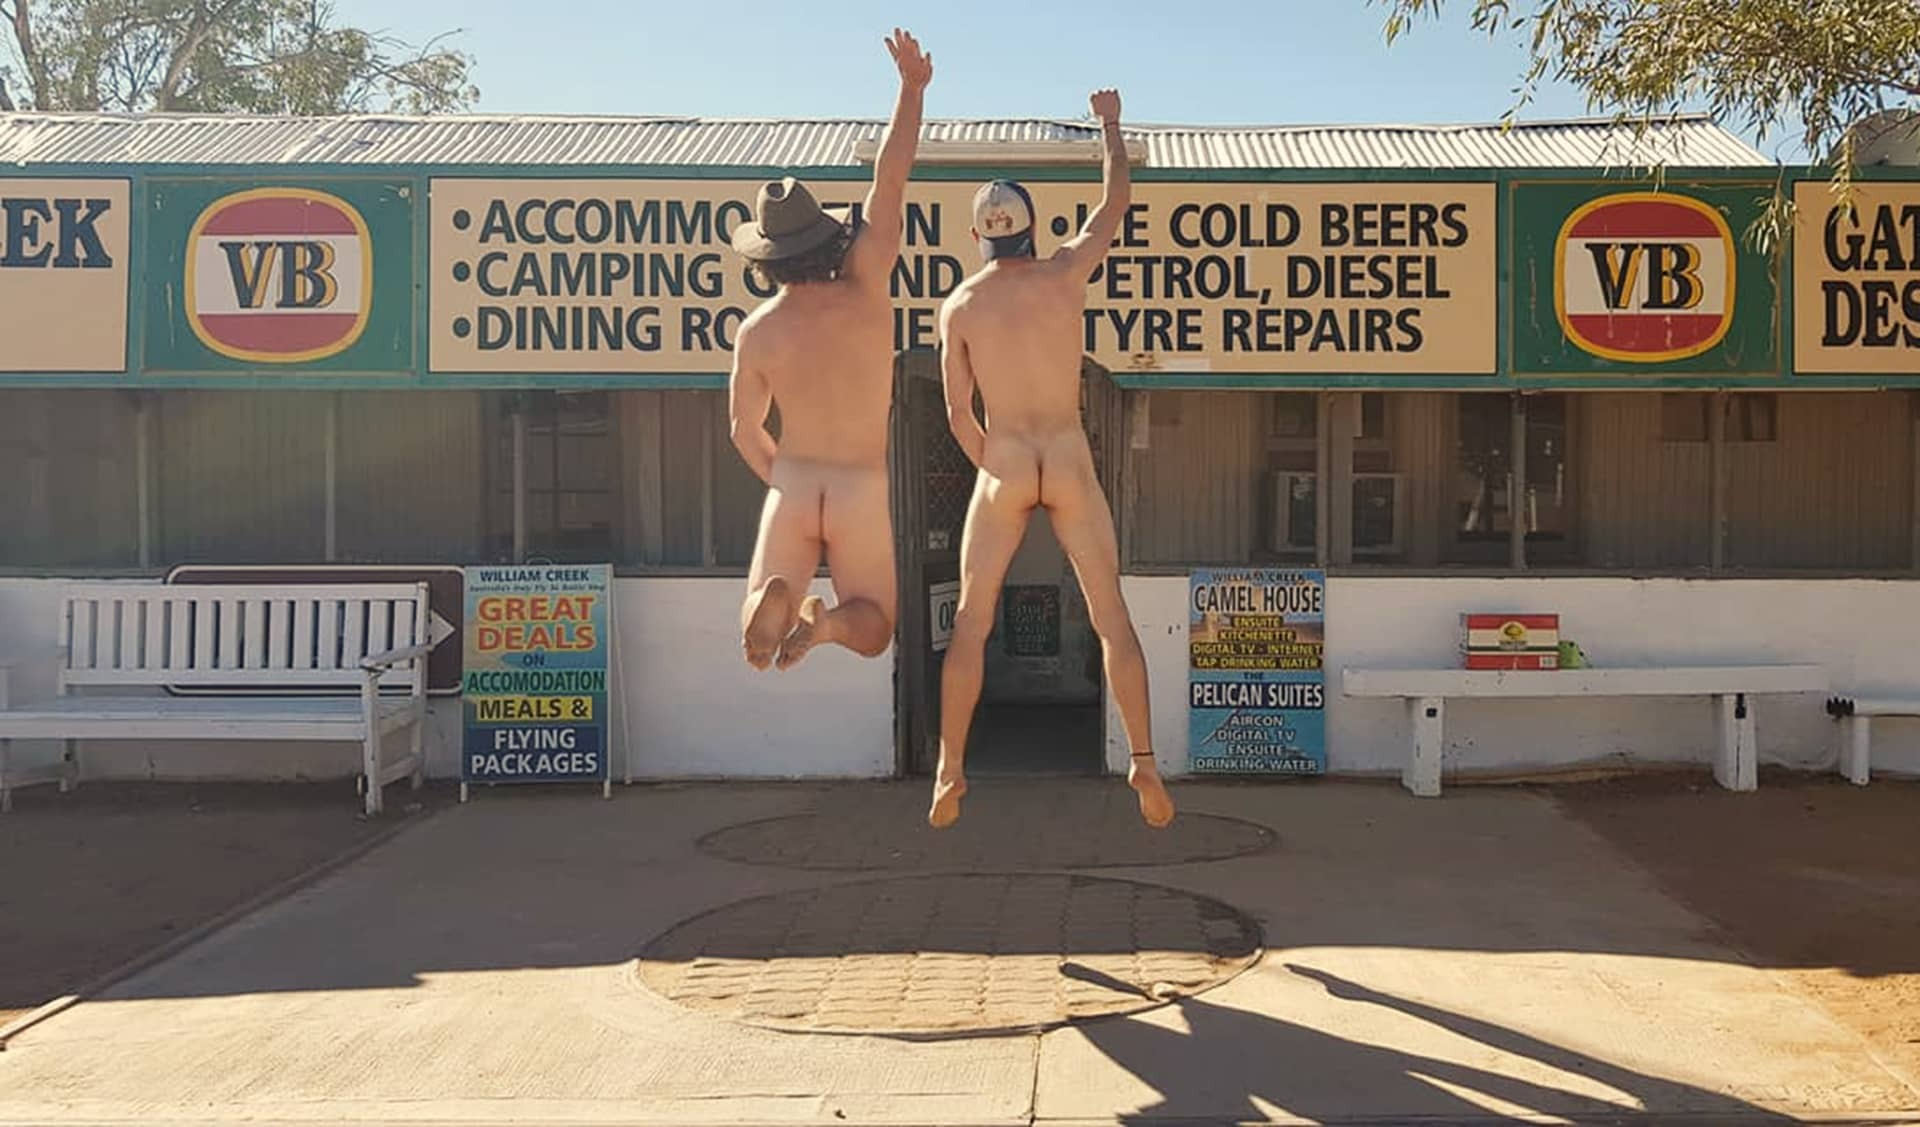 The only time William Creek Hotel had a mass audience, How To Get Nude for Mother Nature (Hint: She's Seen It Before), joe brn Cuzzocrea, nude,